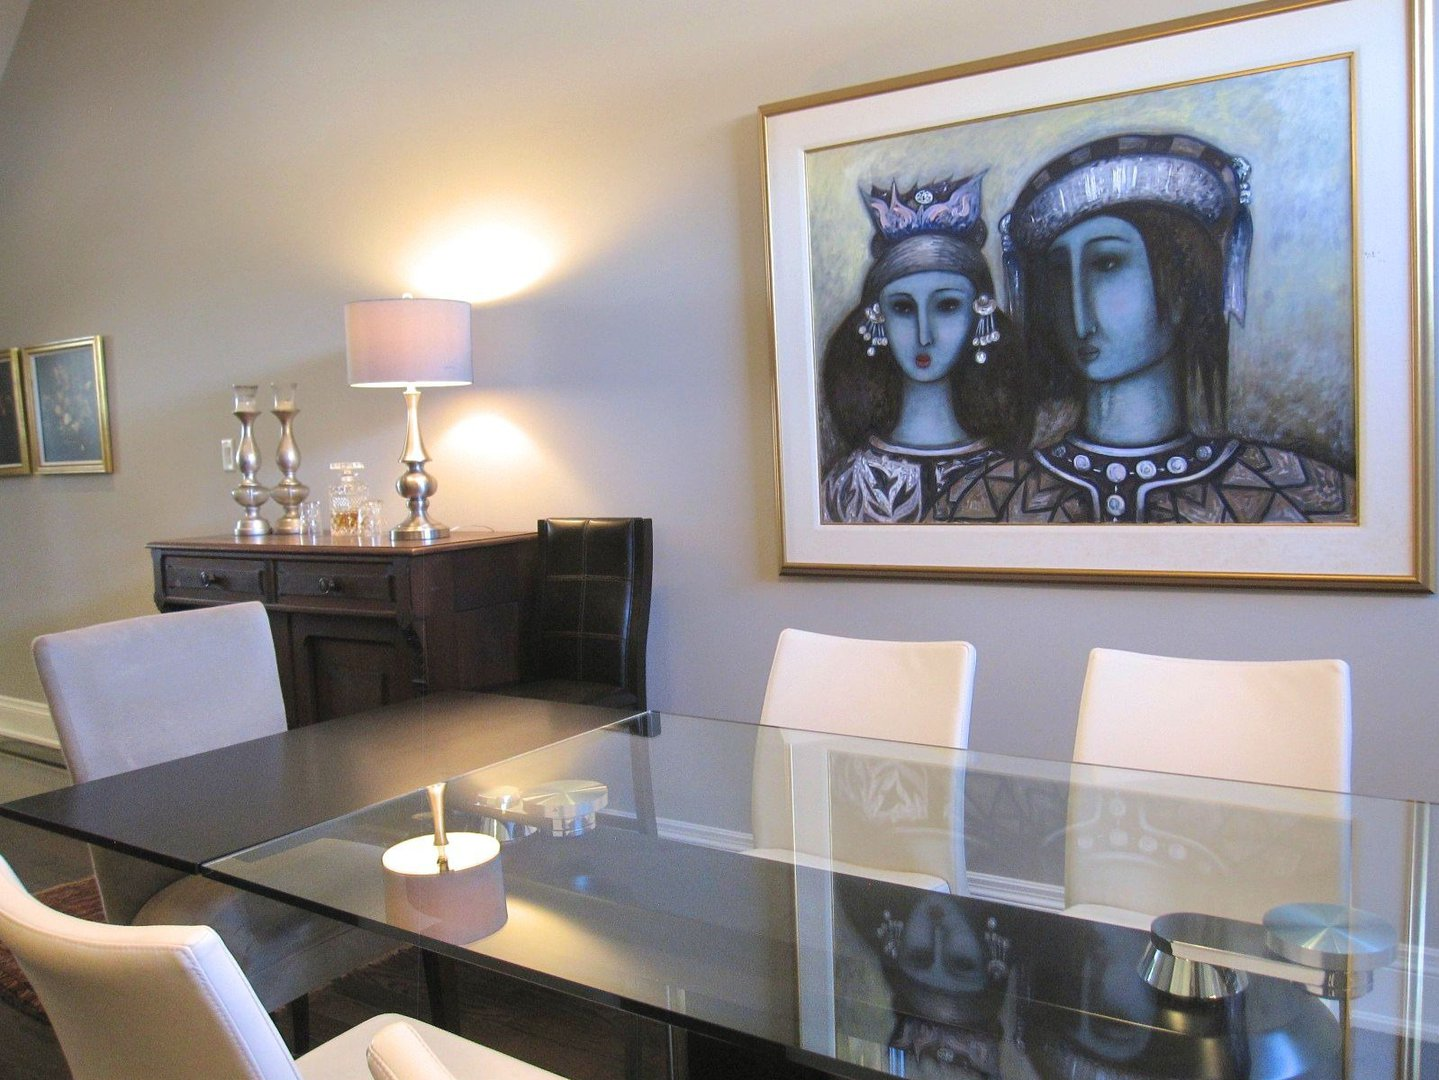 House for rent at 18 Algoma St, Etobicoke, ON. This is the dining area.